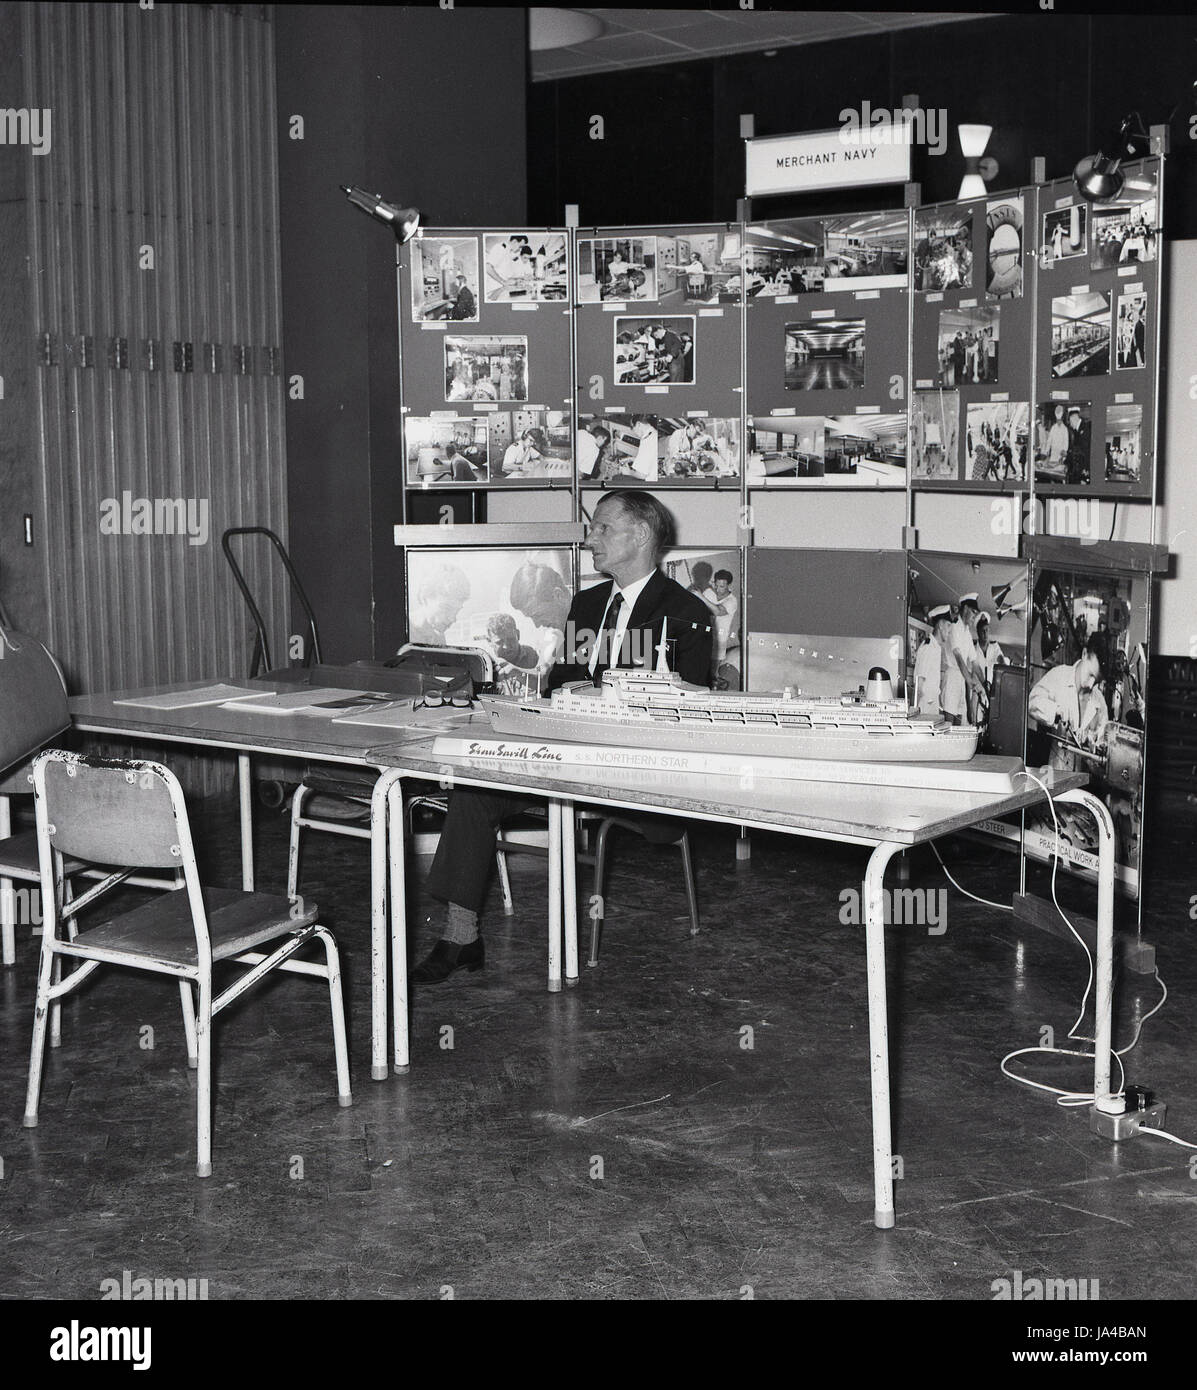 1960s, historical, Merchant Navy job recruitment and information stand at a students careers show or job fair, London, - Stock Image